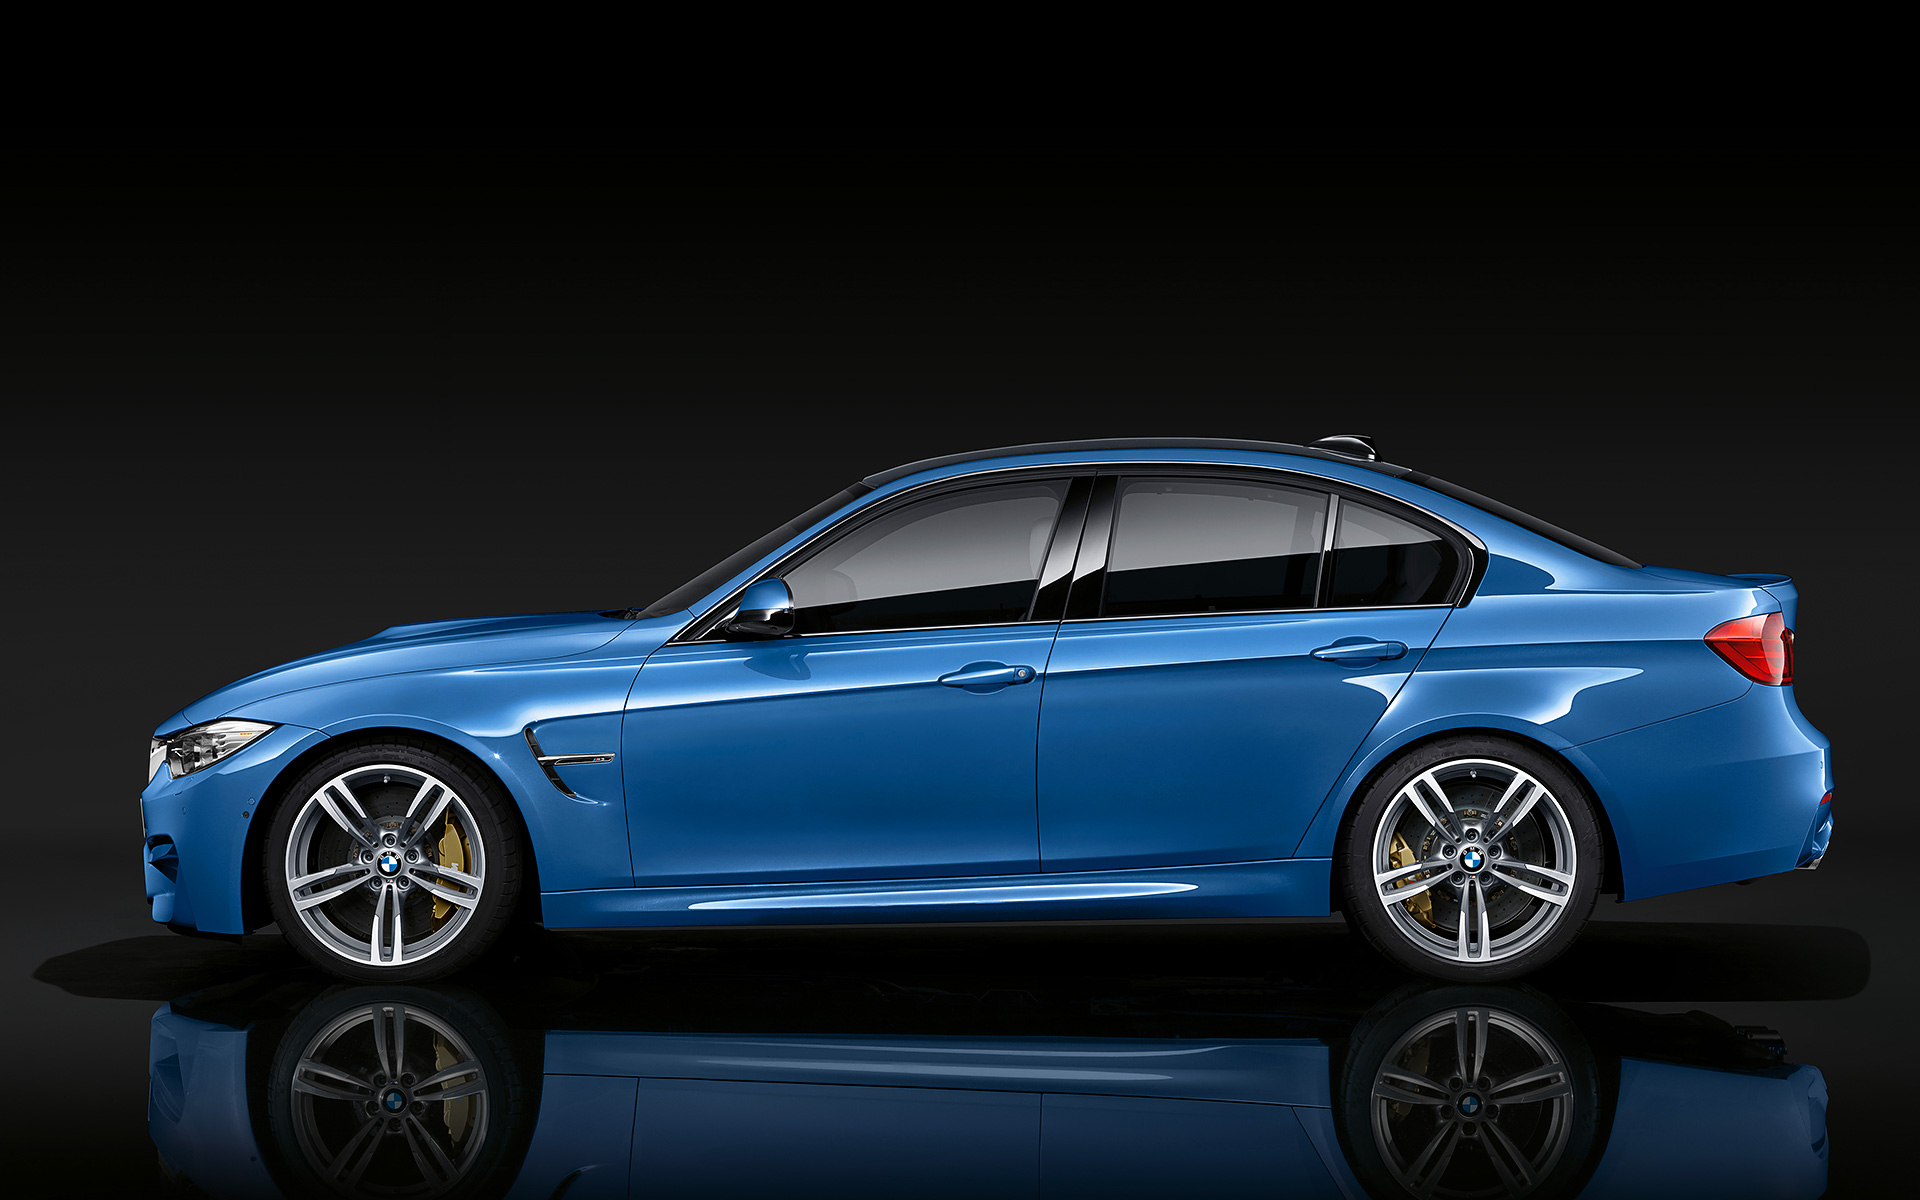 BMW M3 F80 Limousine Wallpaper 1920 1200 06   San Francisco 1920x1200